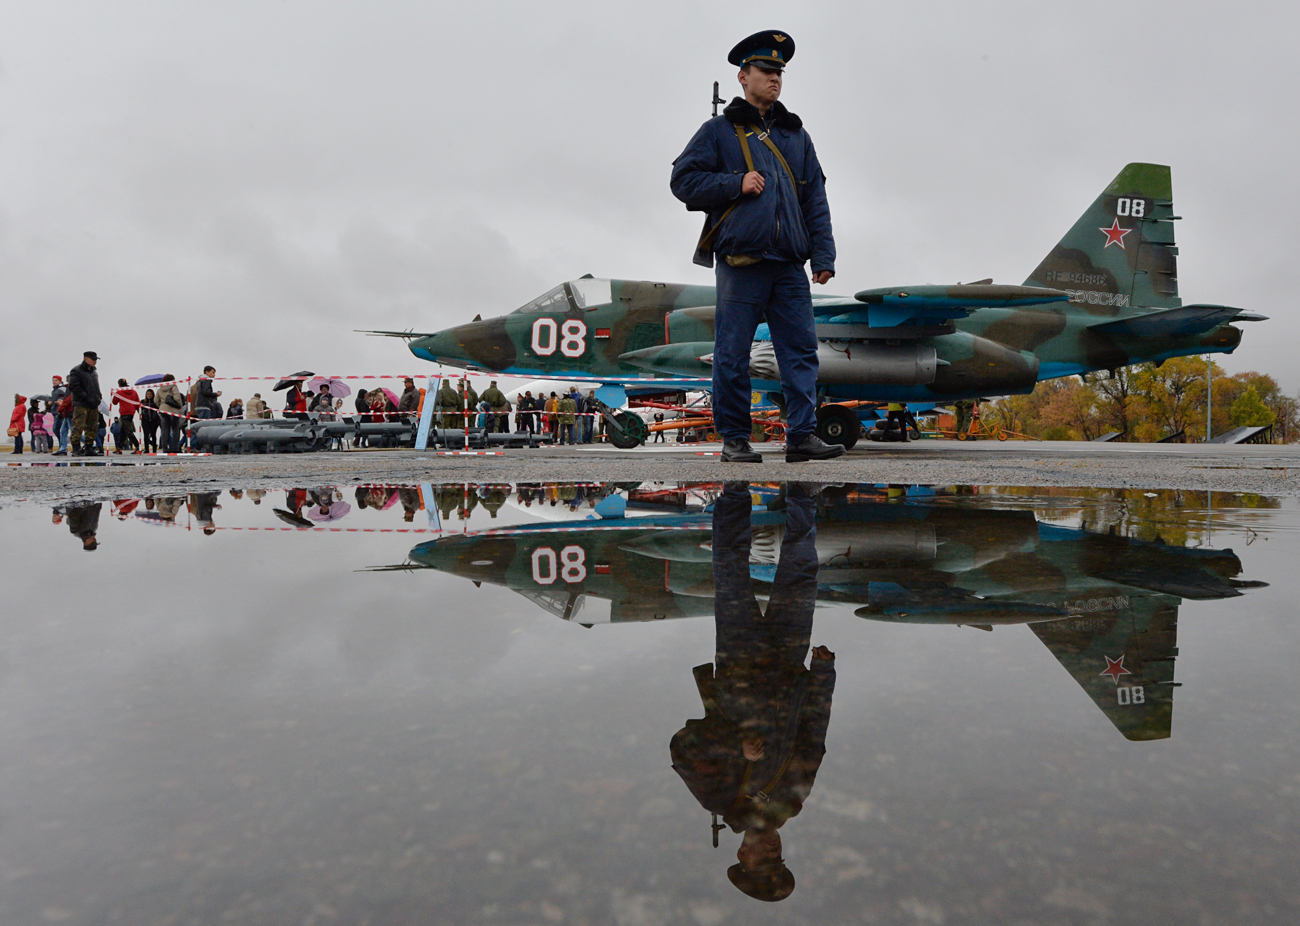 In this photo taken on Oct. 27, 2013, a Russian officer guard patrols at Kant, a Russian air base, outside Bishkek, Kyrgyzstan, with a Su-25 ground attack jet parked is in background.